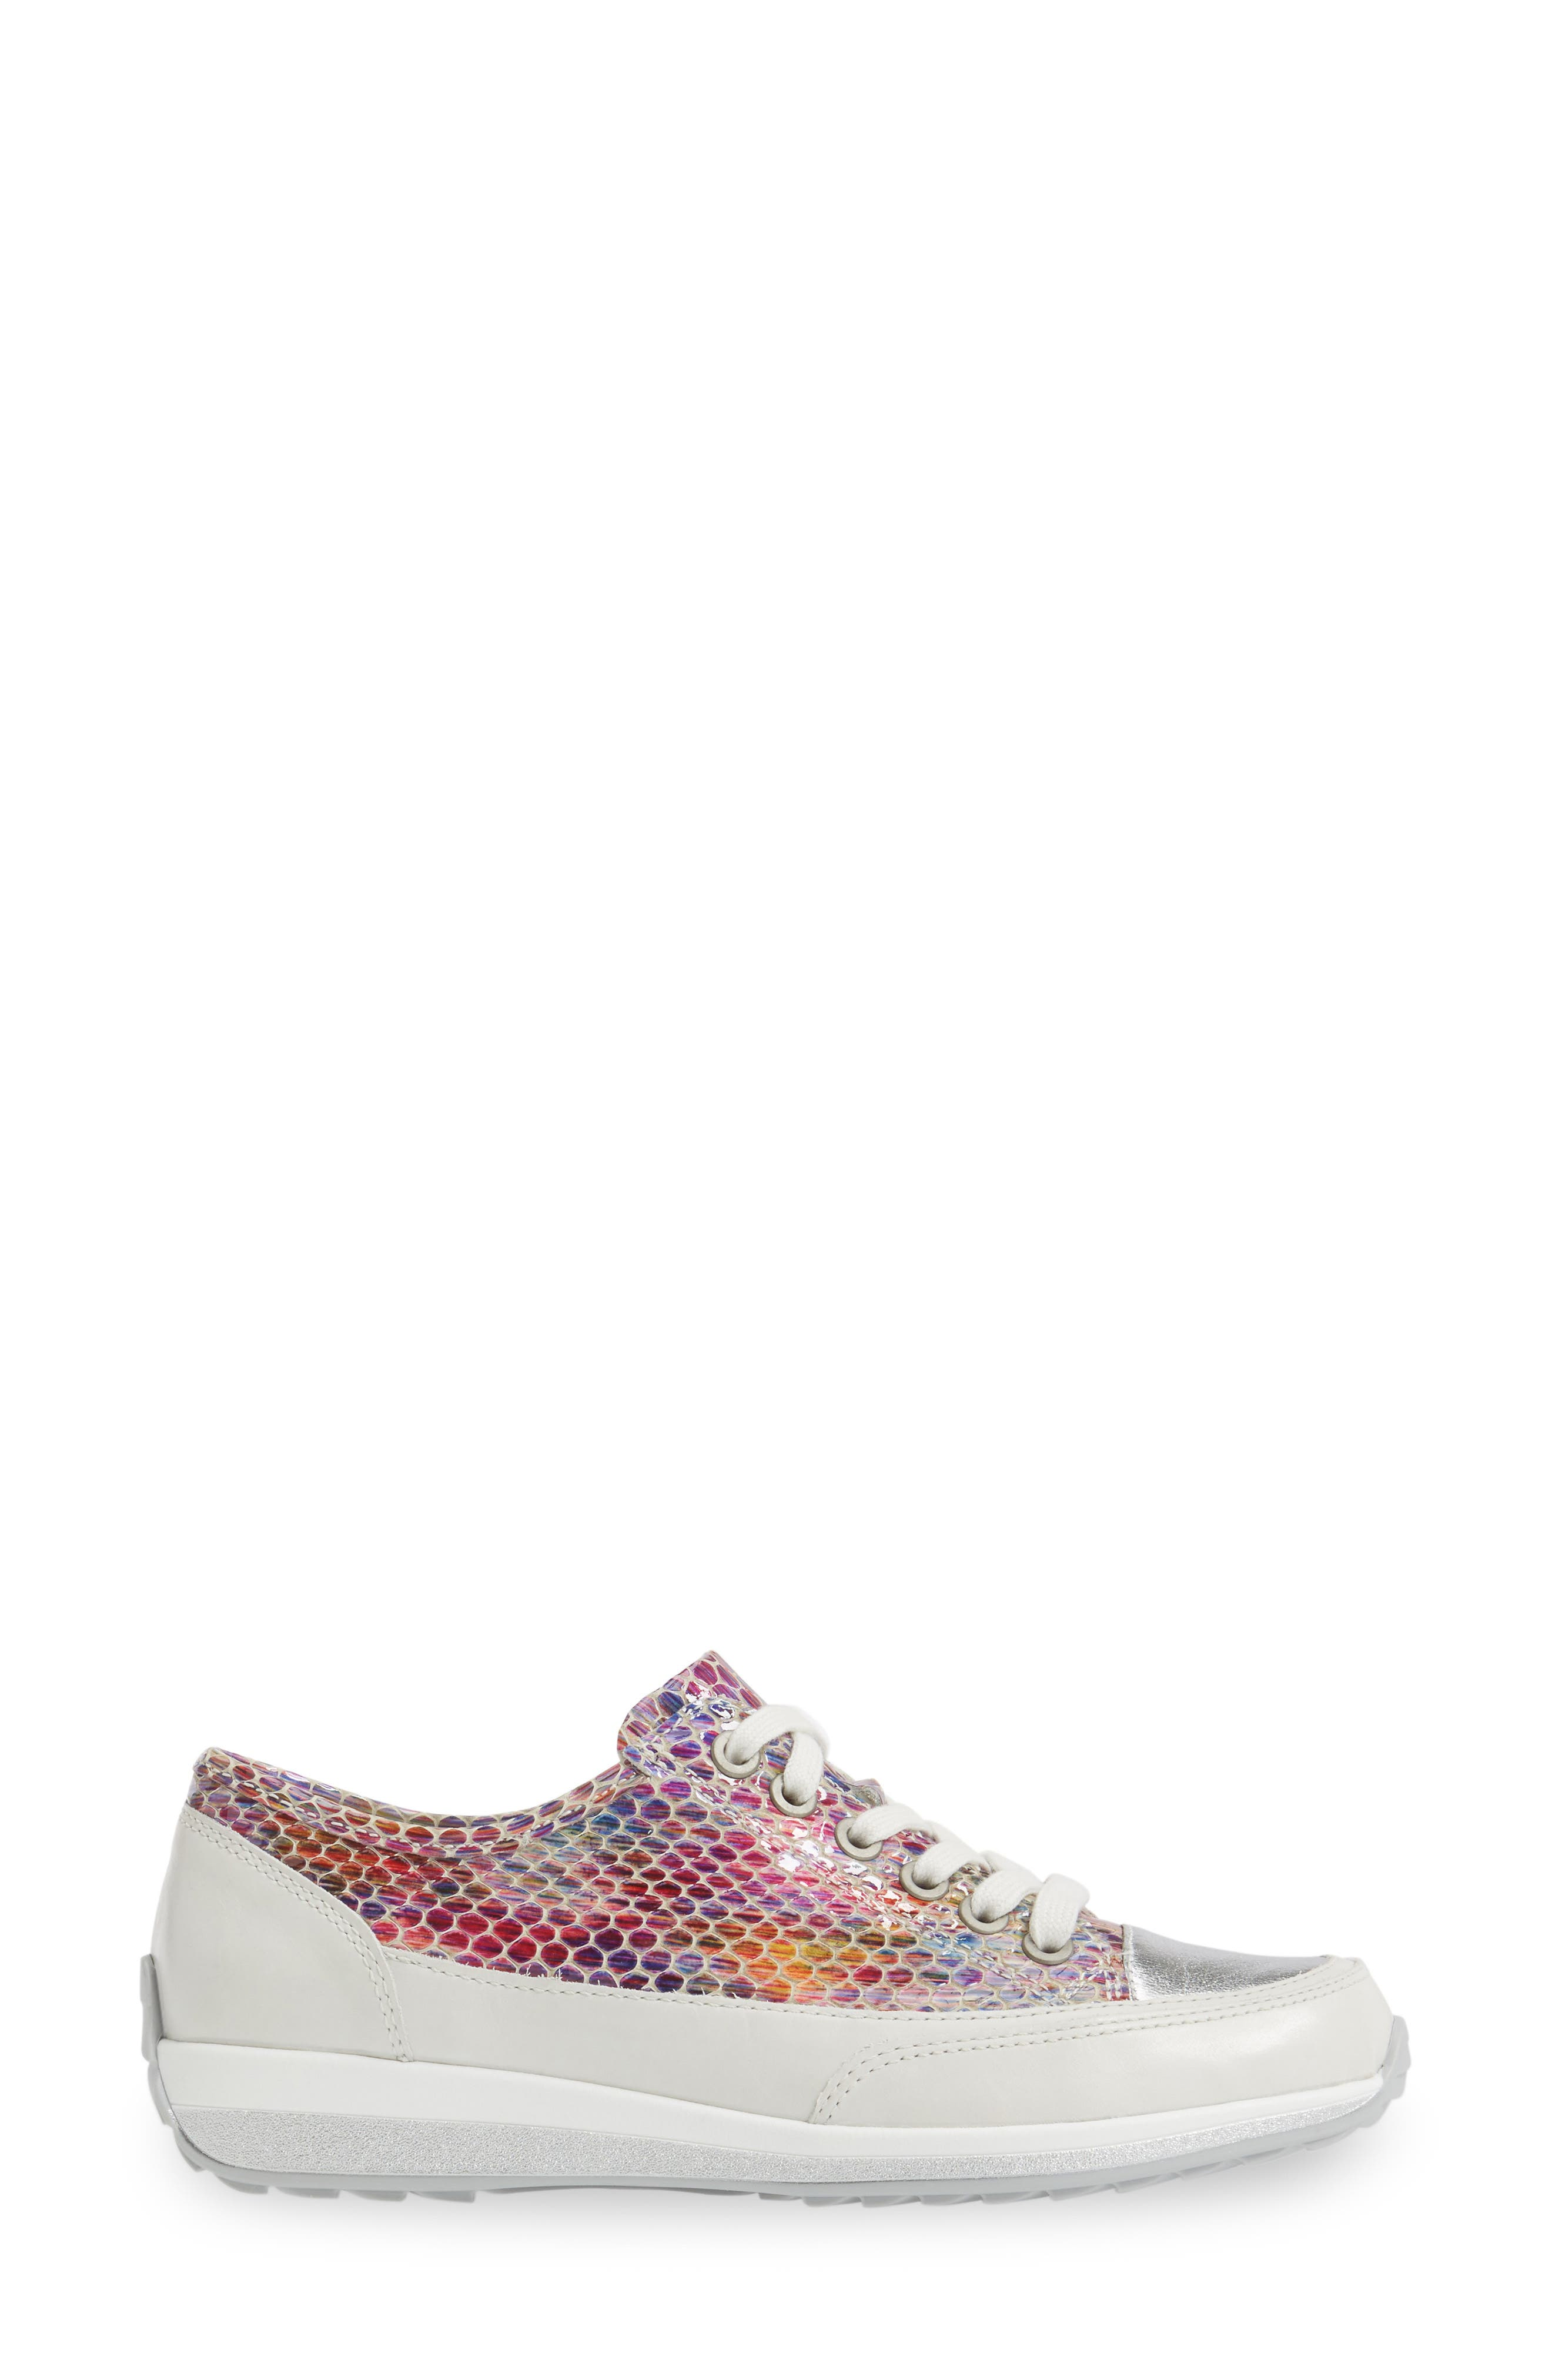 Hermione Sneaker,                             Alternate thumbnail 3, color,                             WHITE MULTI LEATHER